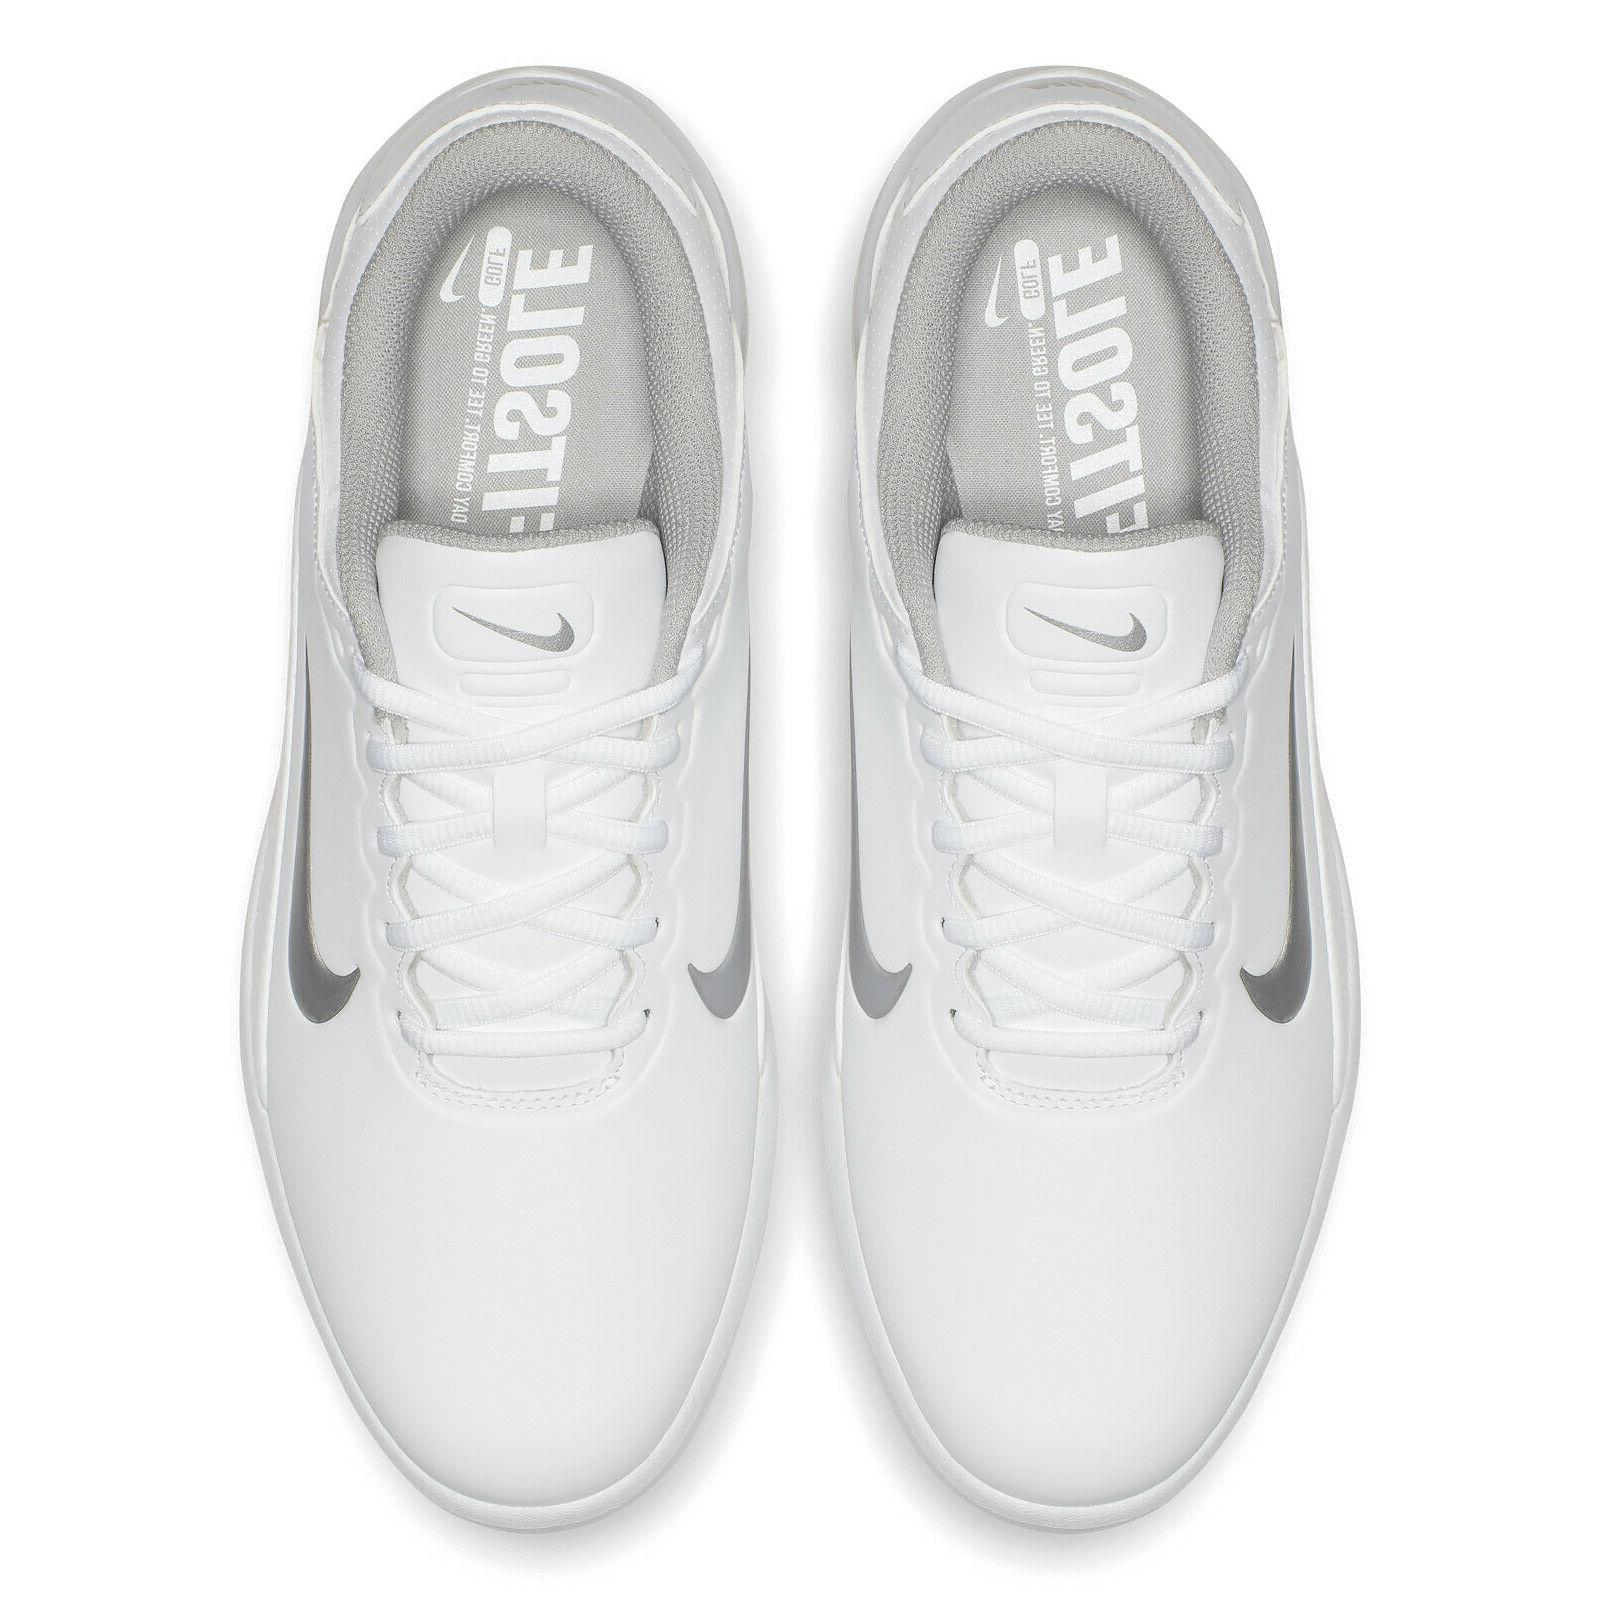 NIKE VAPOR GOLF SHOES Cleats WIDE WIDTH, White,